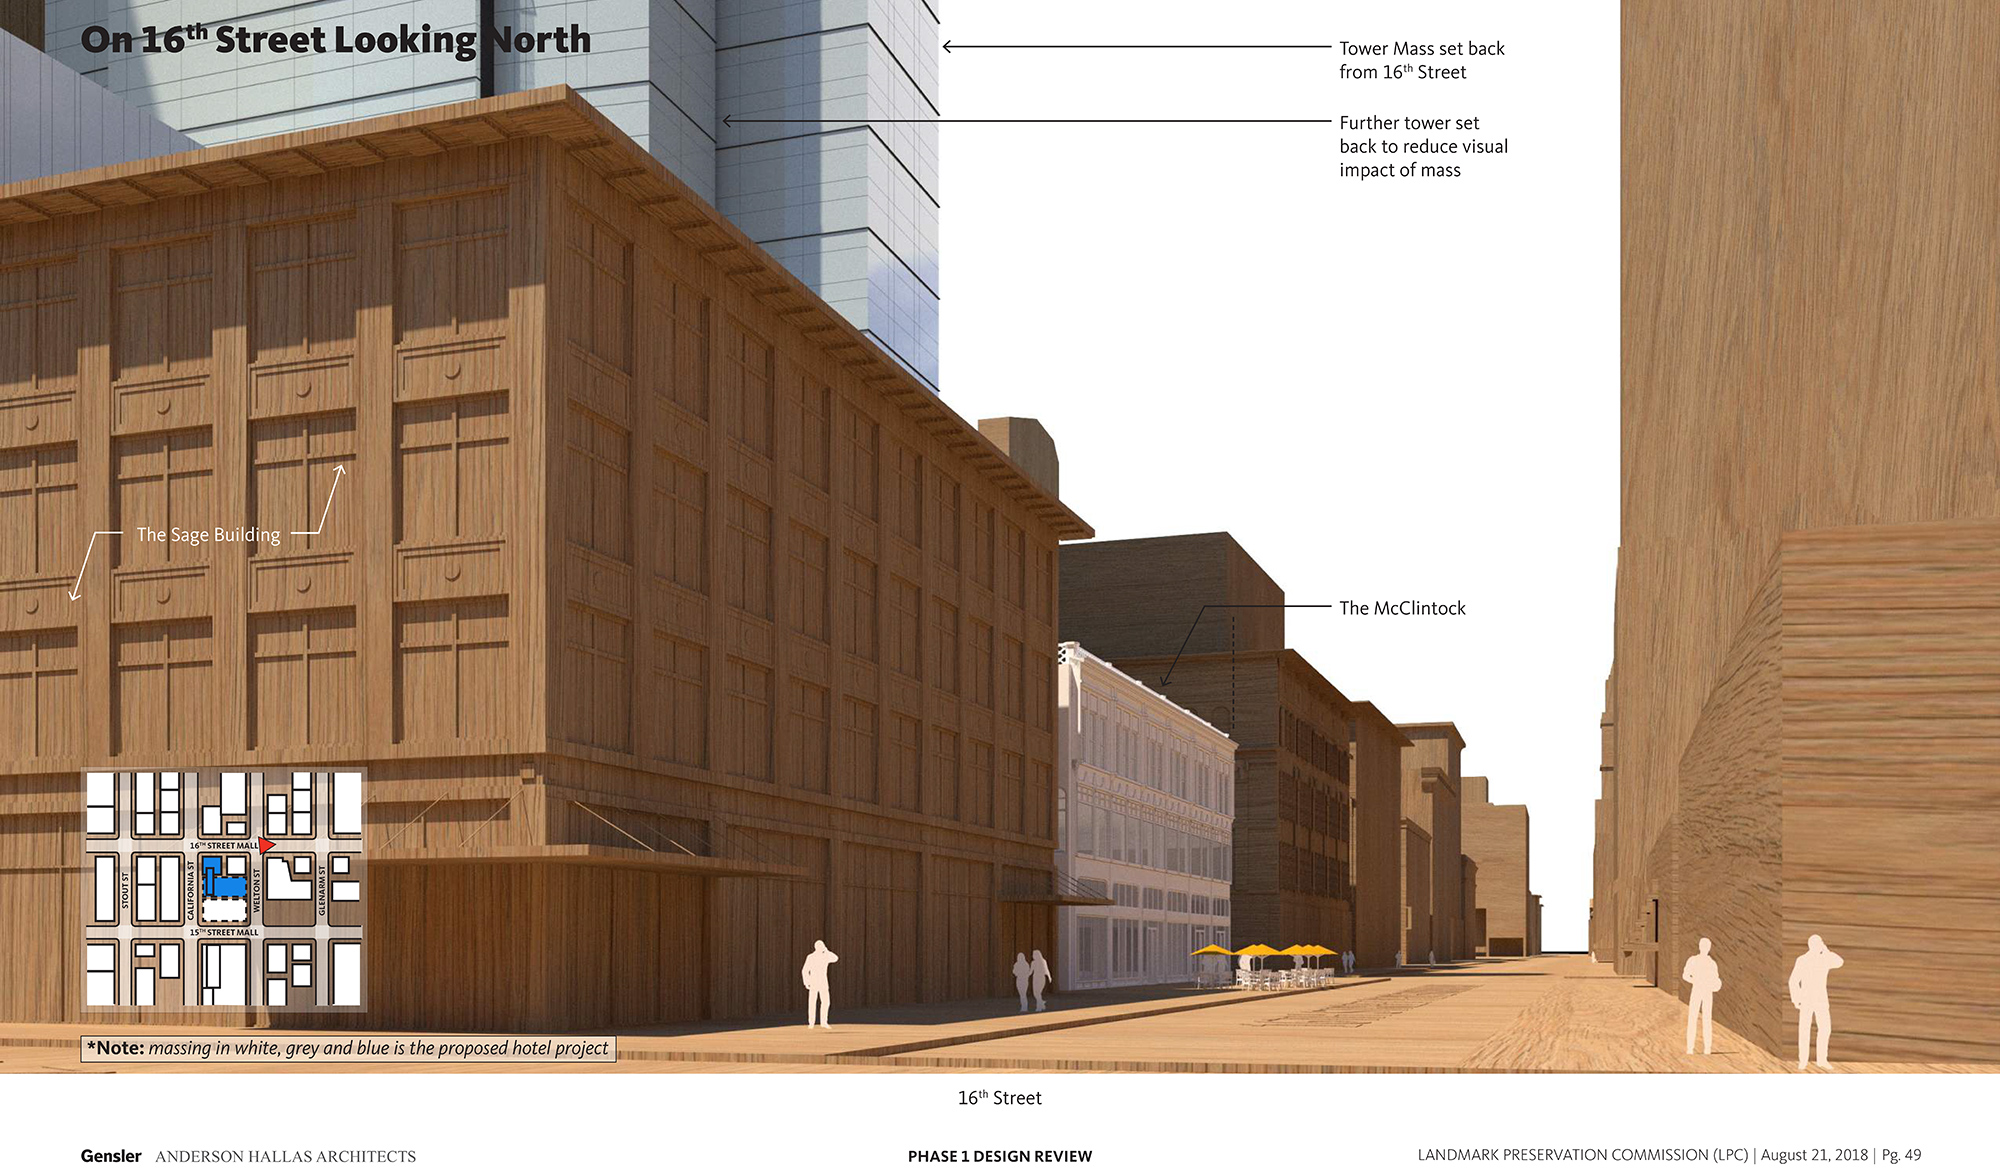 Perspective along 16th Street of the proposed Block 162 hotel, courtesy Gensler/Anderson Hallas Architects